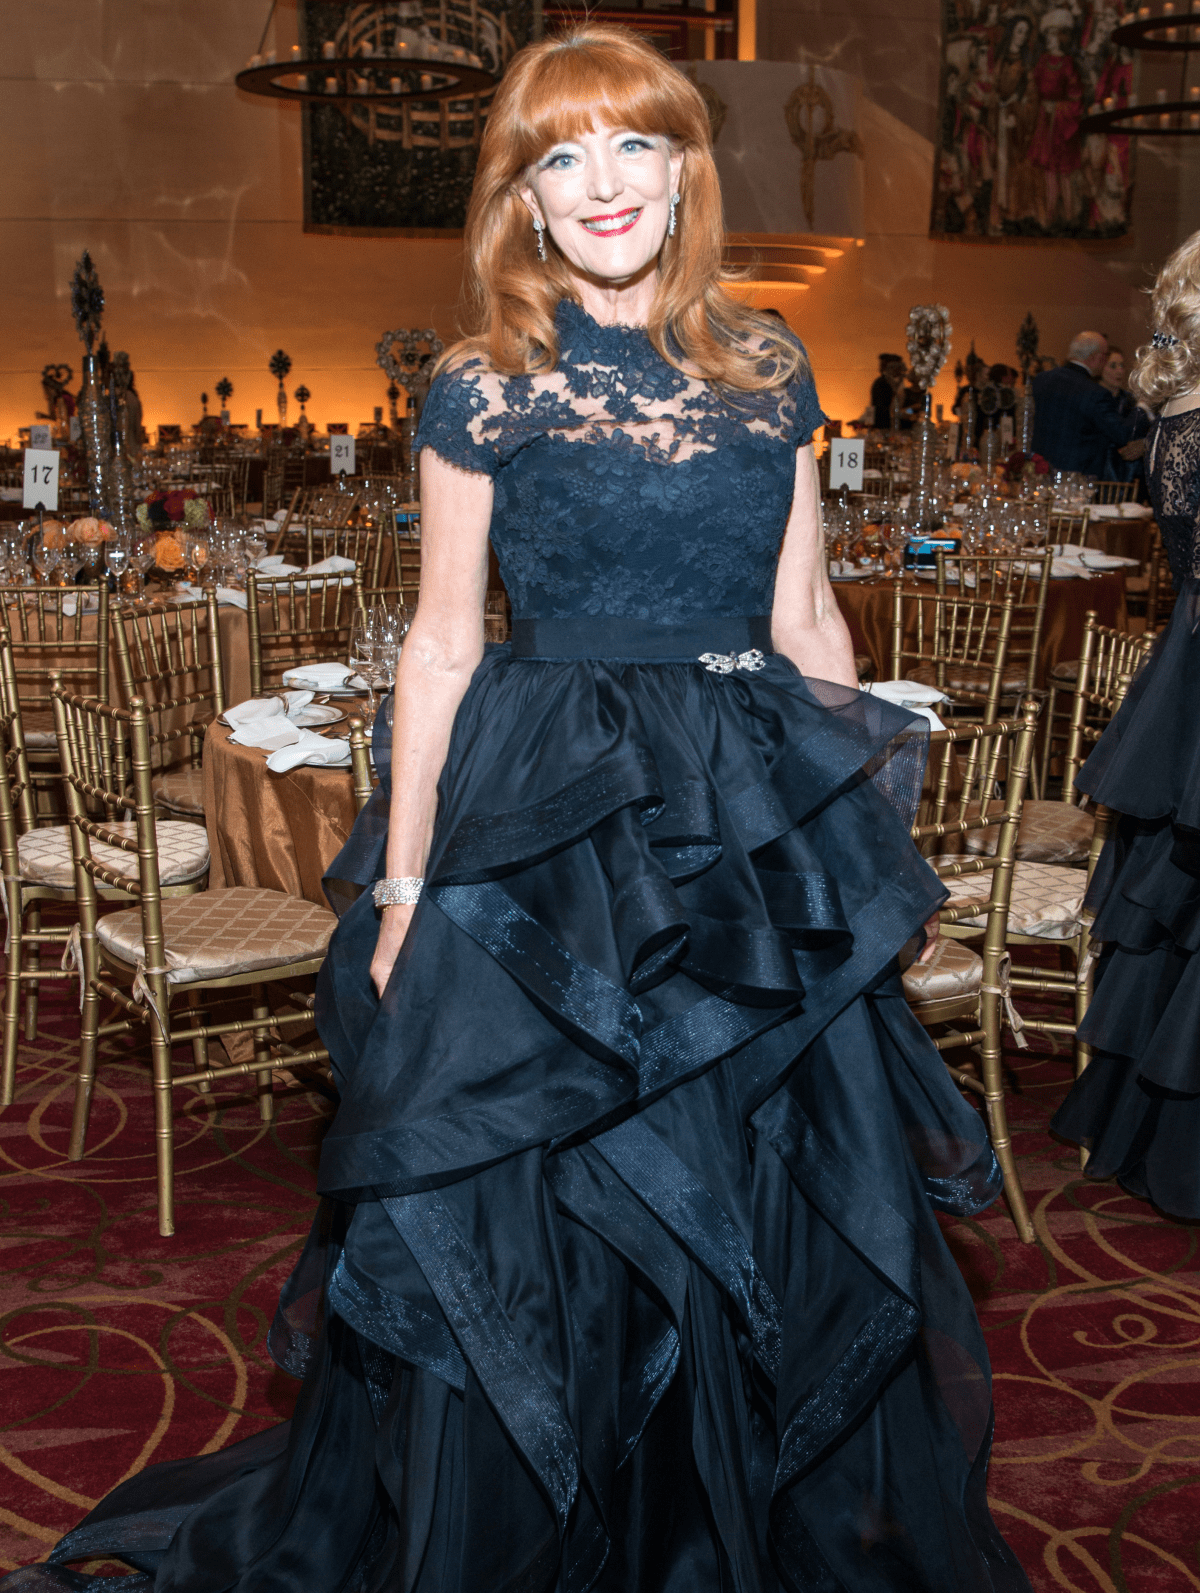 Houston, Ballet Ball gowns, Feb 2017, Gracia Cavnar in Reem Acra